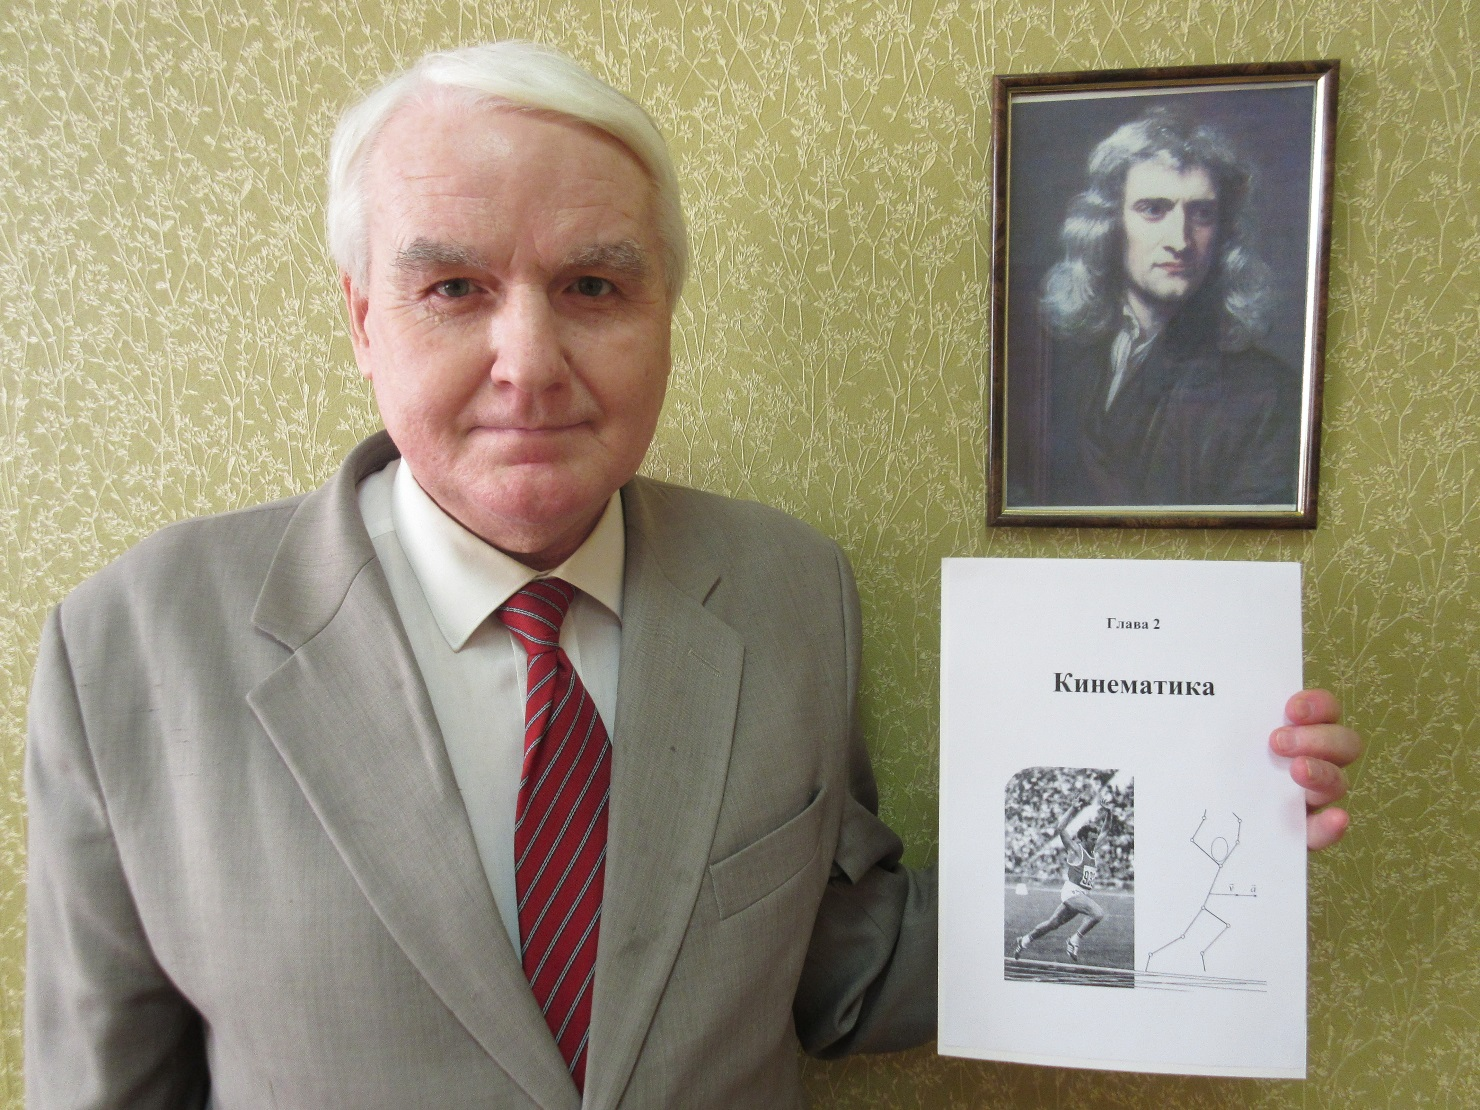 Left: Prof. Krasovskii with a page from his Lectures in Theoretical Mechanics (Chapter 2, Kinematics, in Russian) featuring Valeriy Borzov on finish. This page was a reason for my study. Top right: Portrait of Isaac Newton.